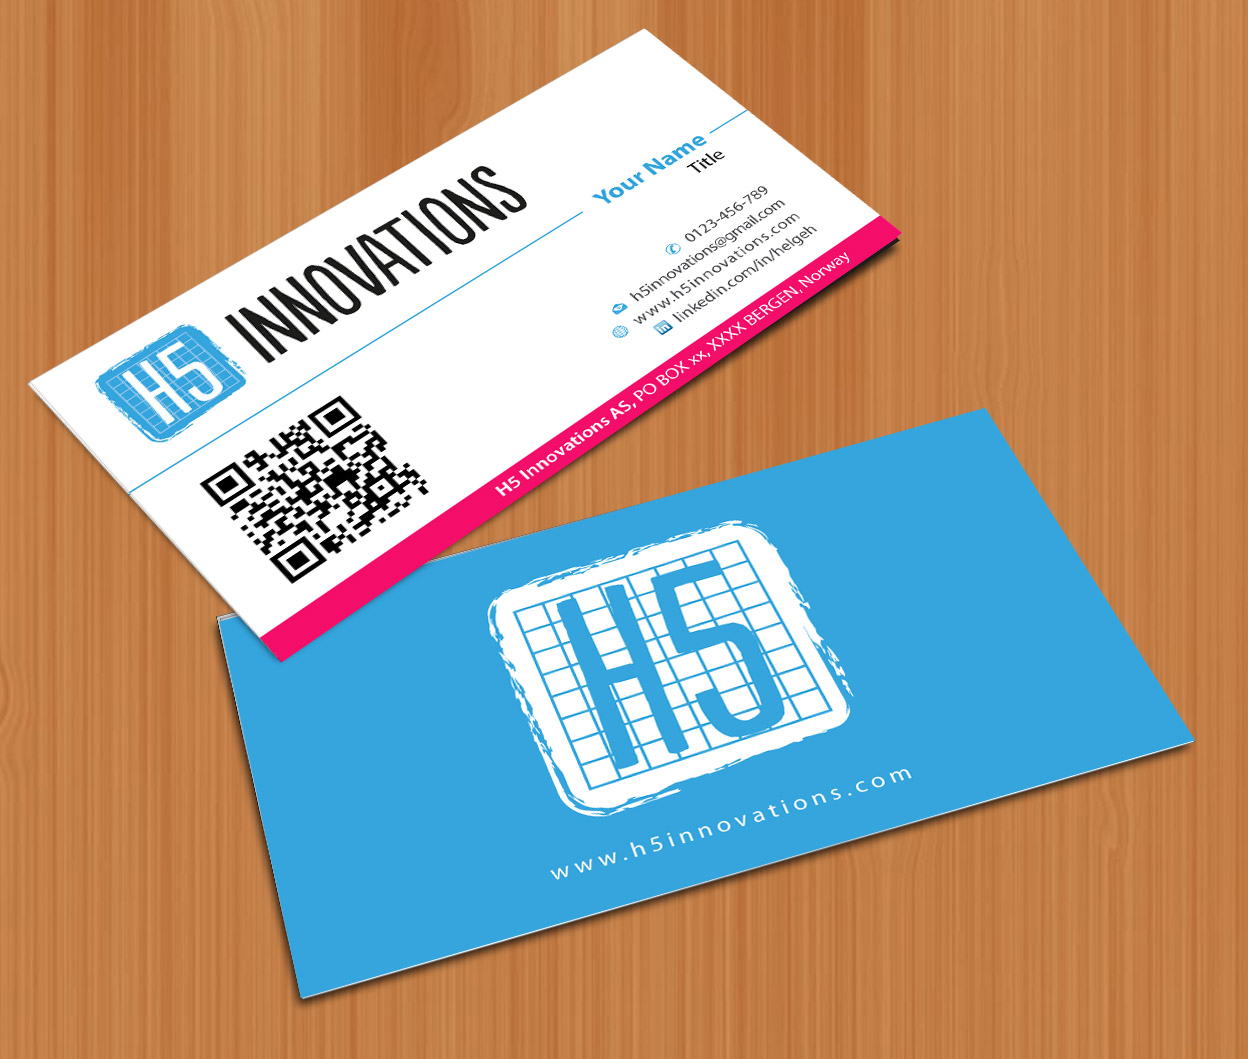 Playful modern business card design for h5 innovations by smart business card design by smart for business card design for crazy technology innovation company design magicingreecefo Gallery